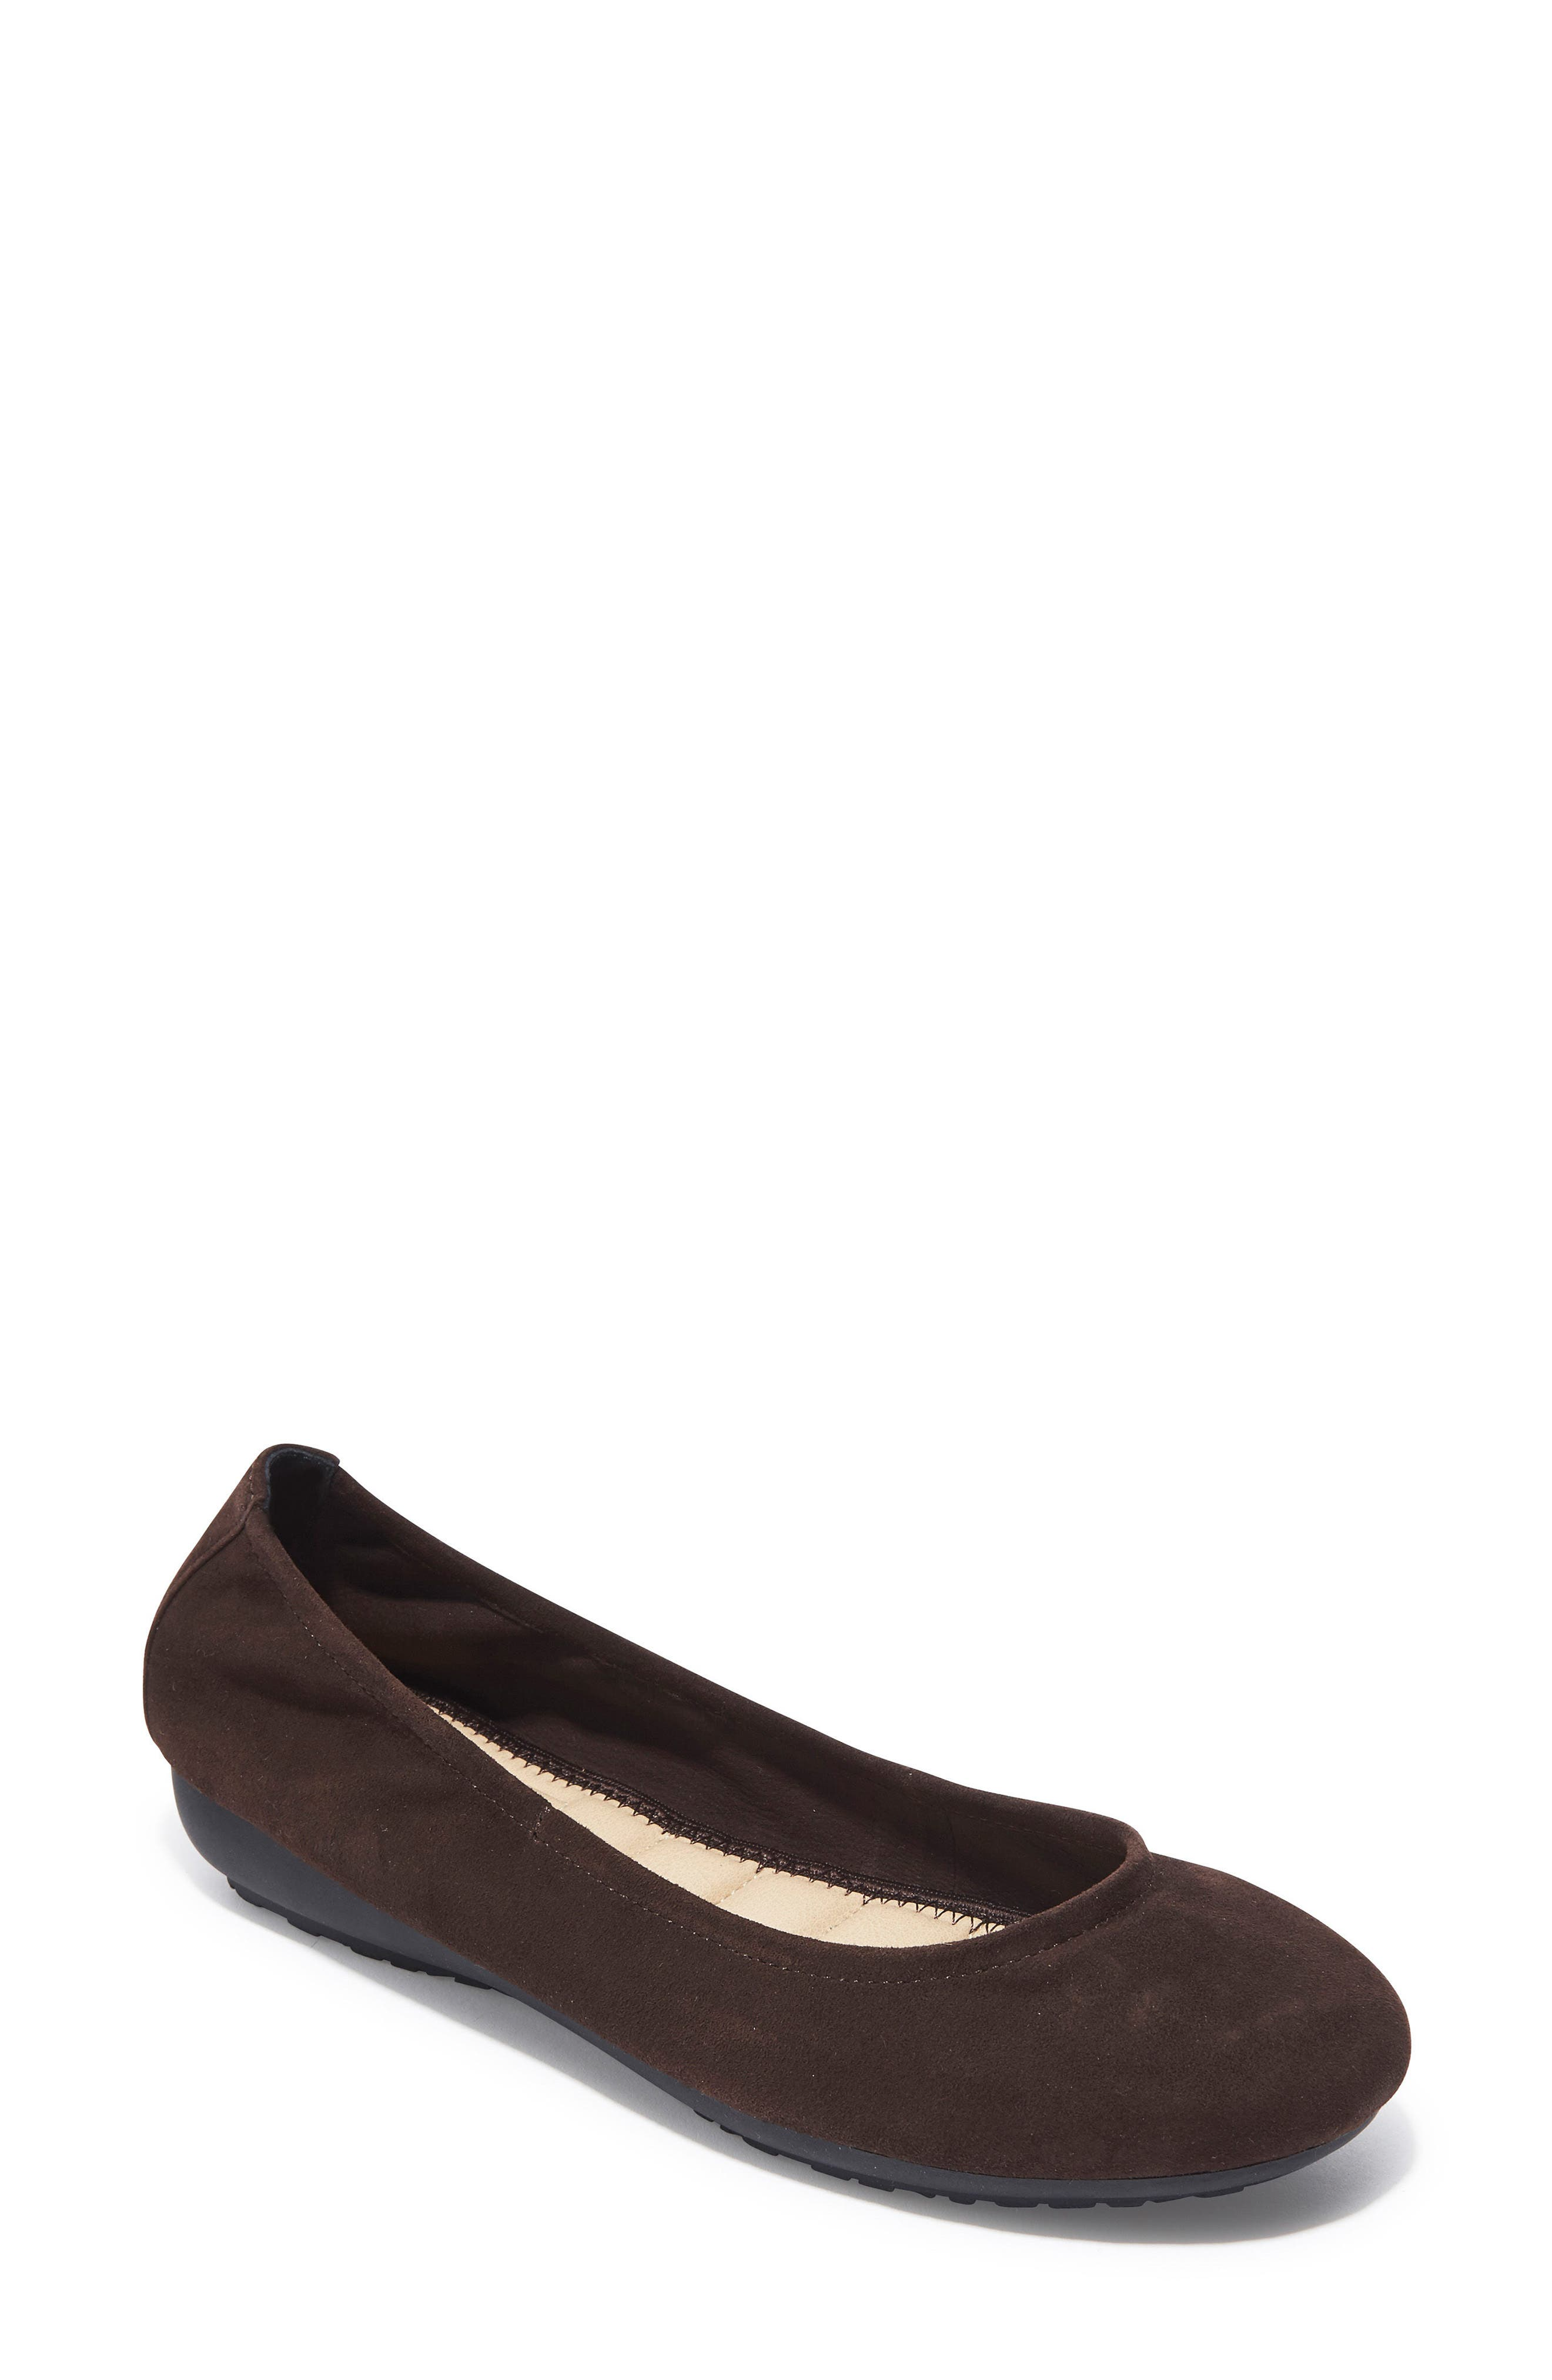 Main Image - Me Too Janell Sliver Wedge Flat (Women)